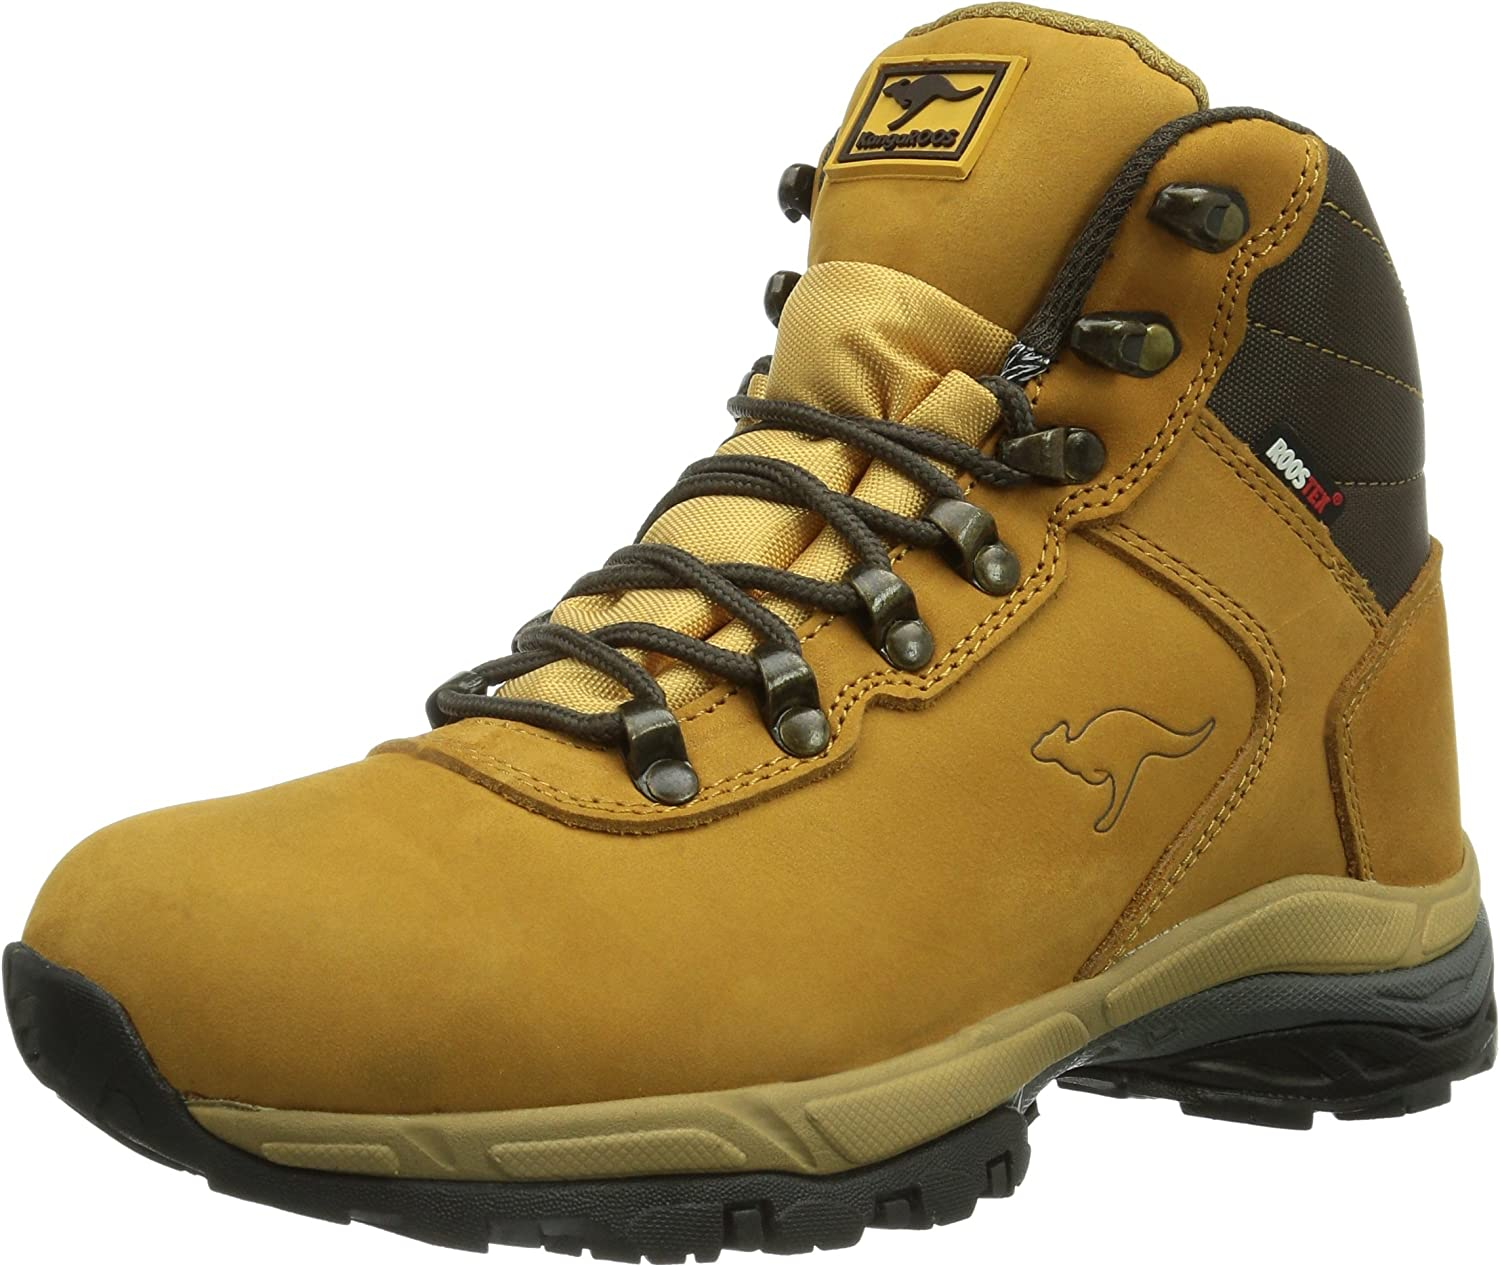 KangaROOS K-Outdoor 3005w 3690a, Unisex Adults' Boots